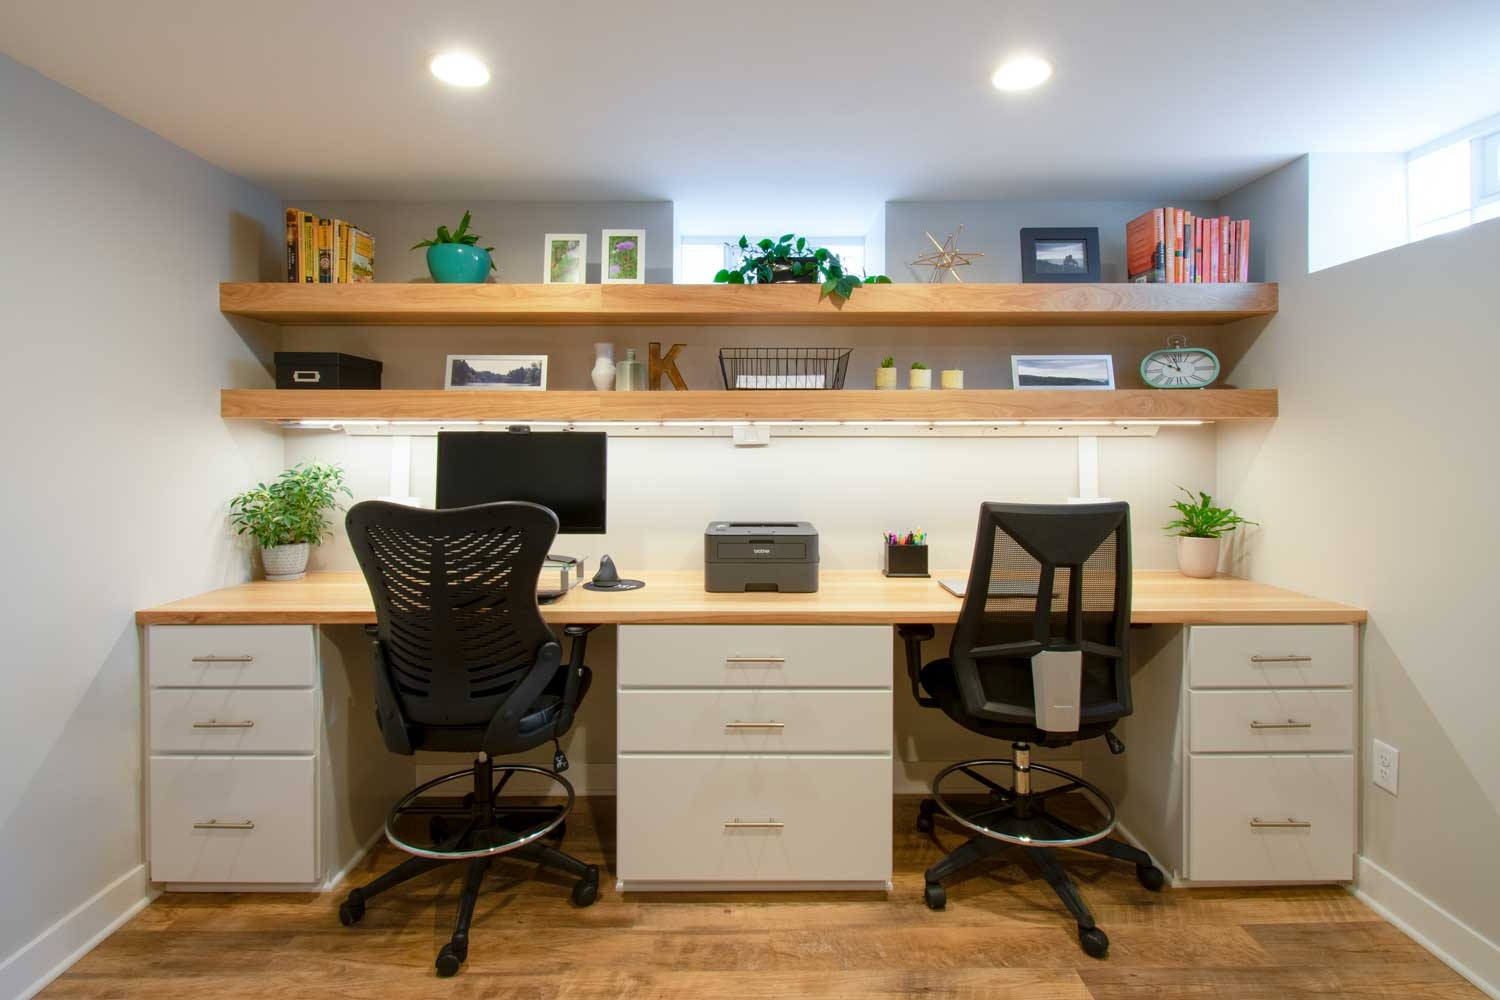 Wauwatosa Basement Remodel Office Laundry Bath Living Room | Kitchen With Stairs To Basement | Next | Mid Century | Living Room | Narrow | Ranch